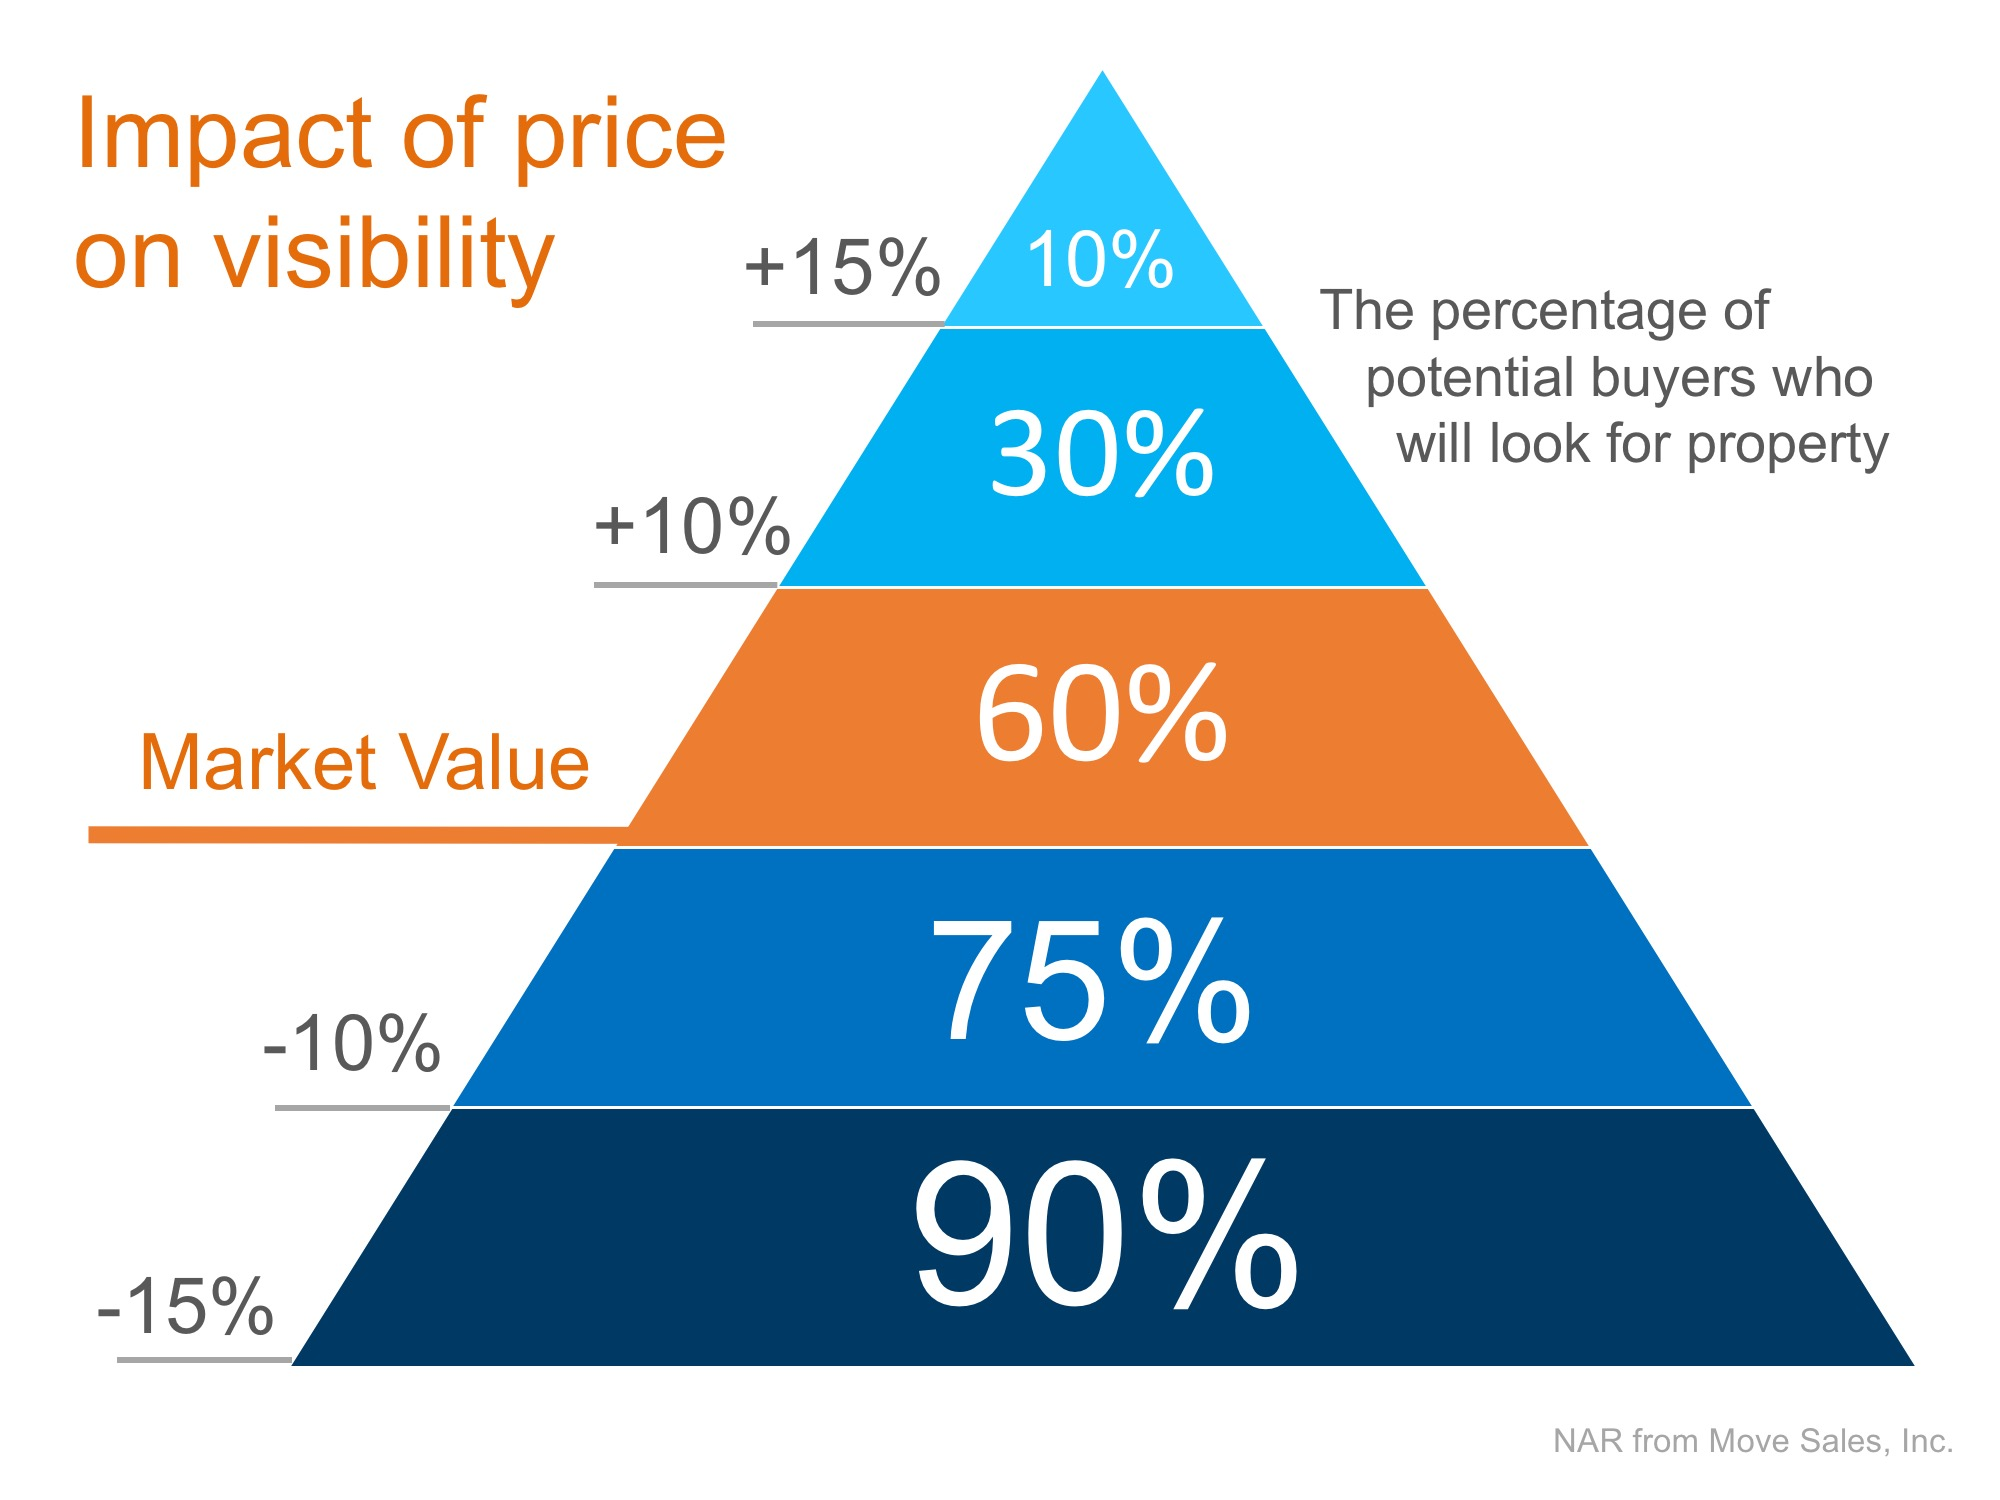 The impact of pricing